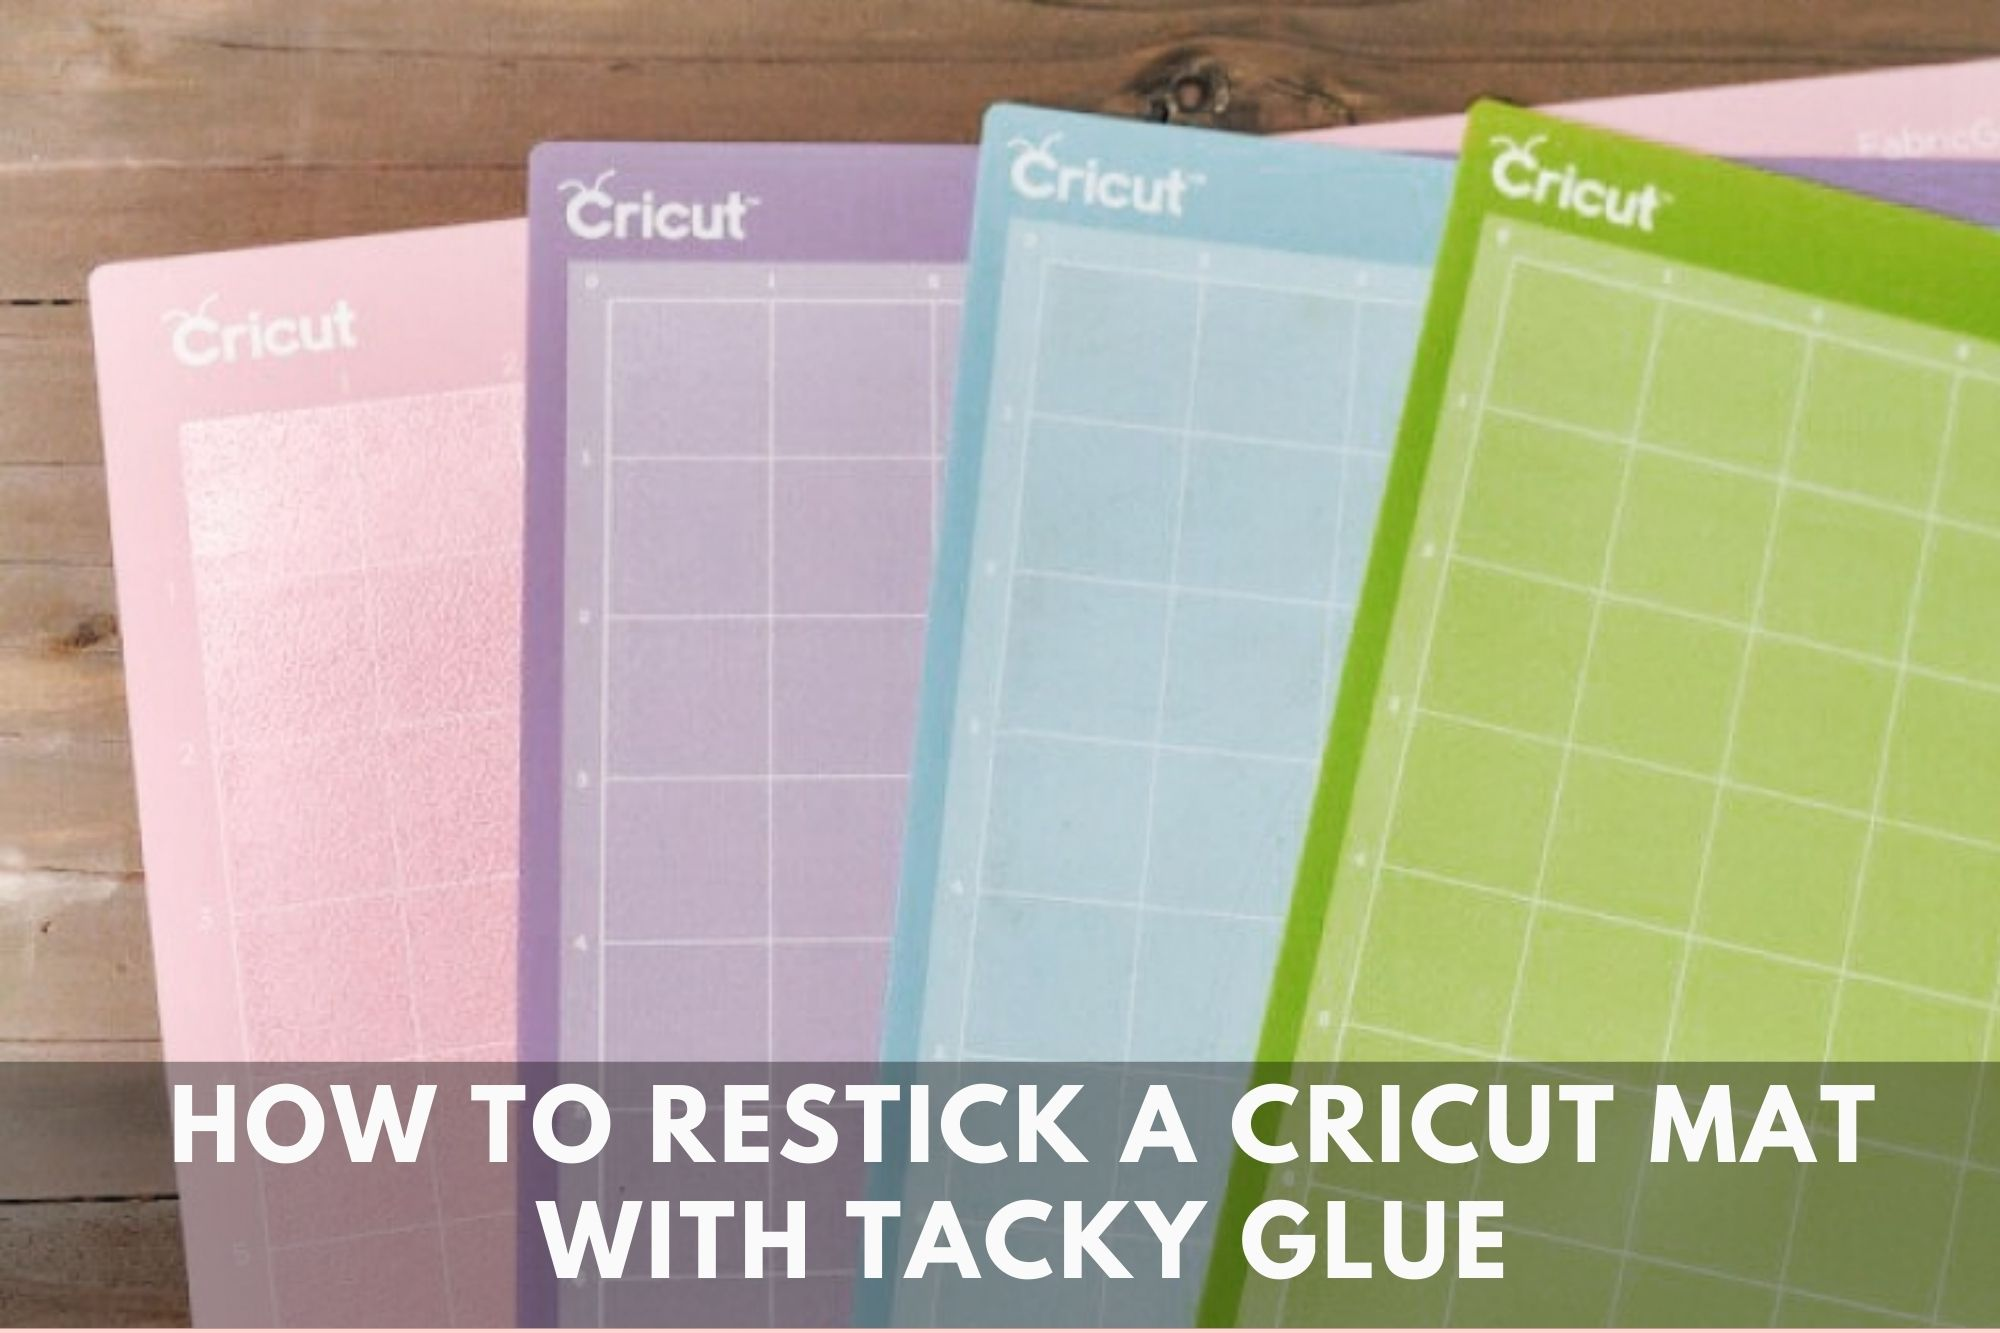 How To Restick A Cricut Mat With Tacky Glue